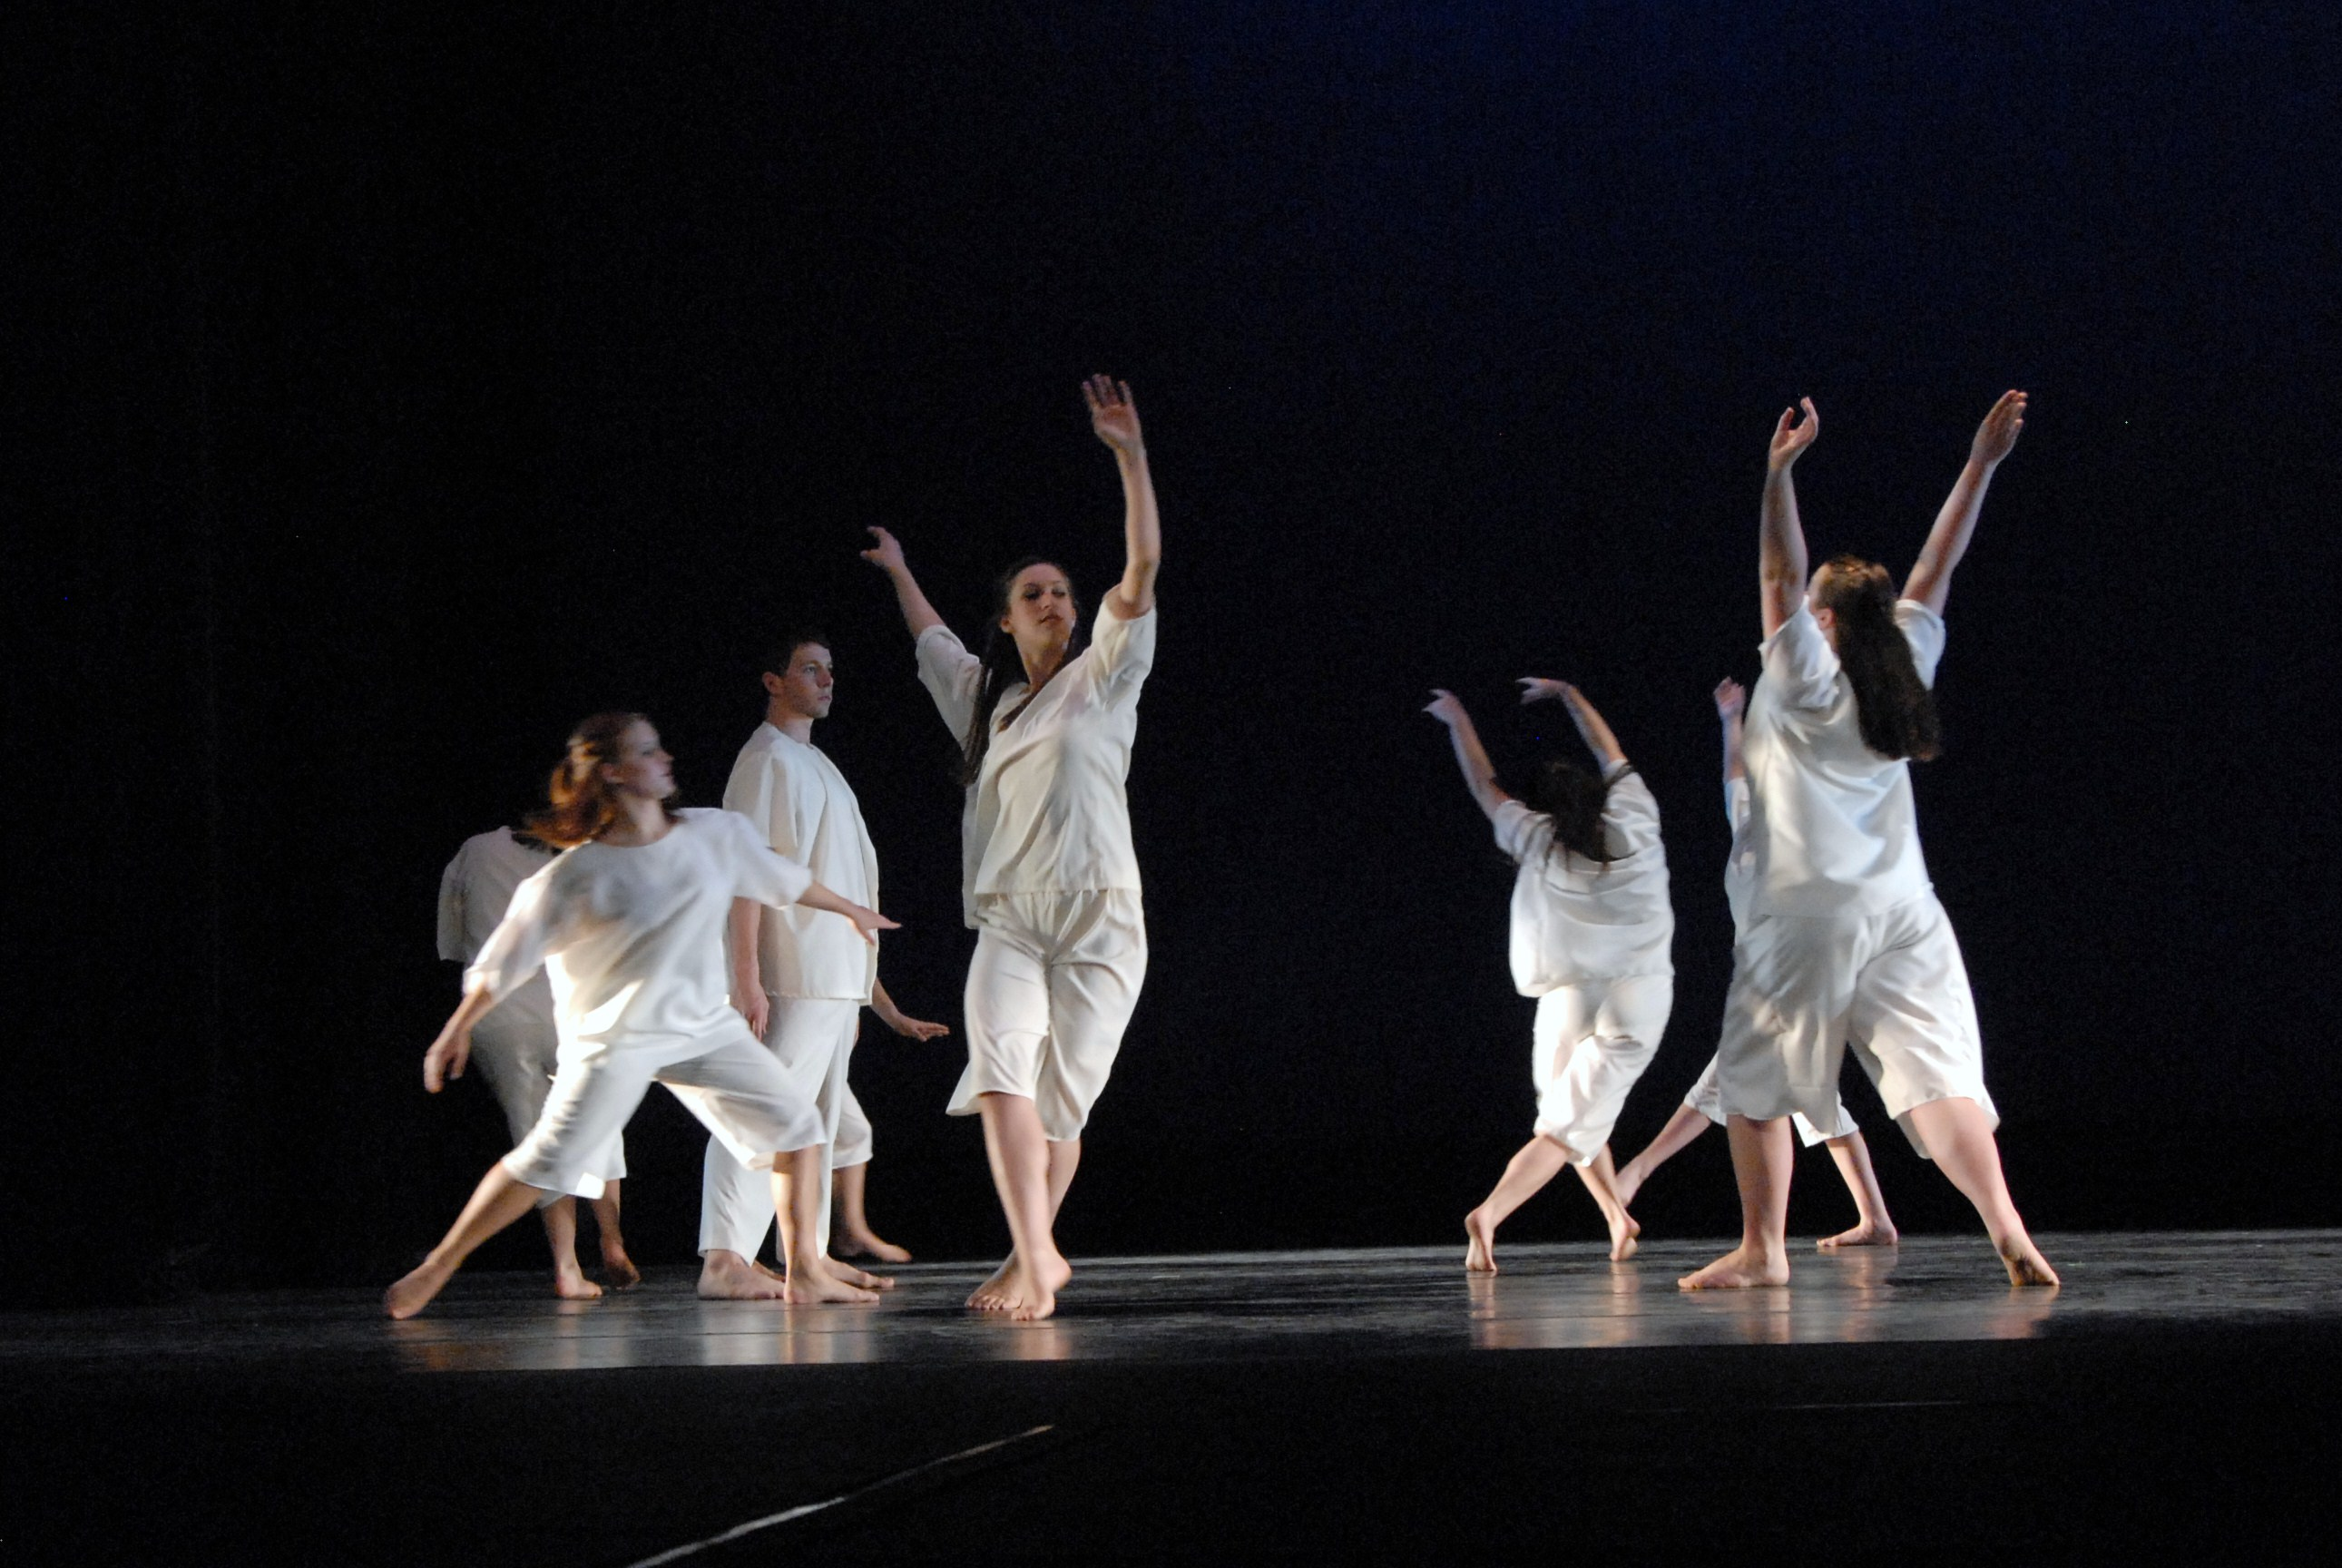 WT Dancers in a performance